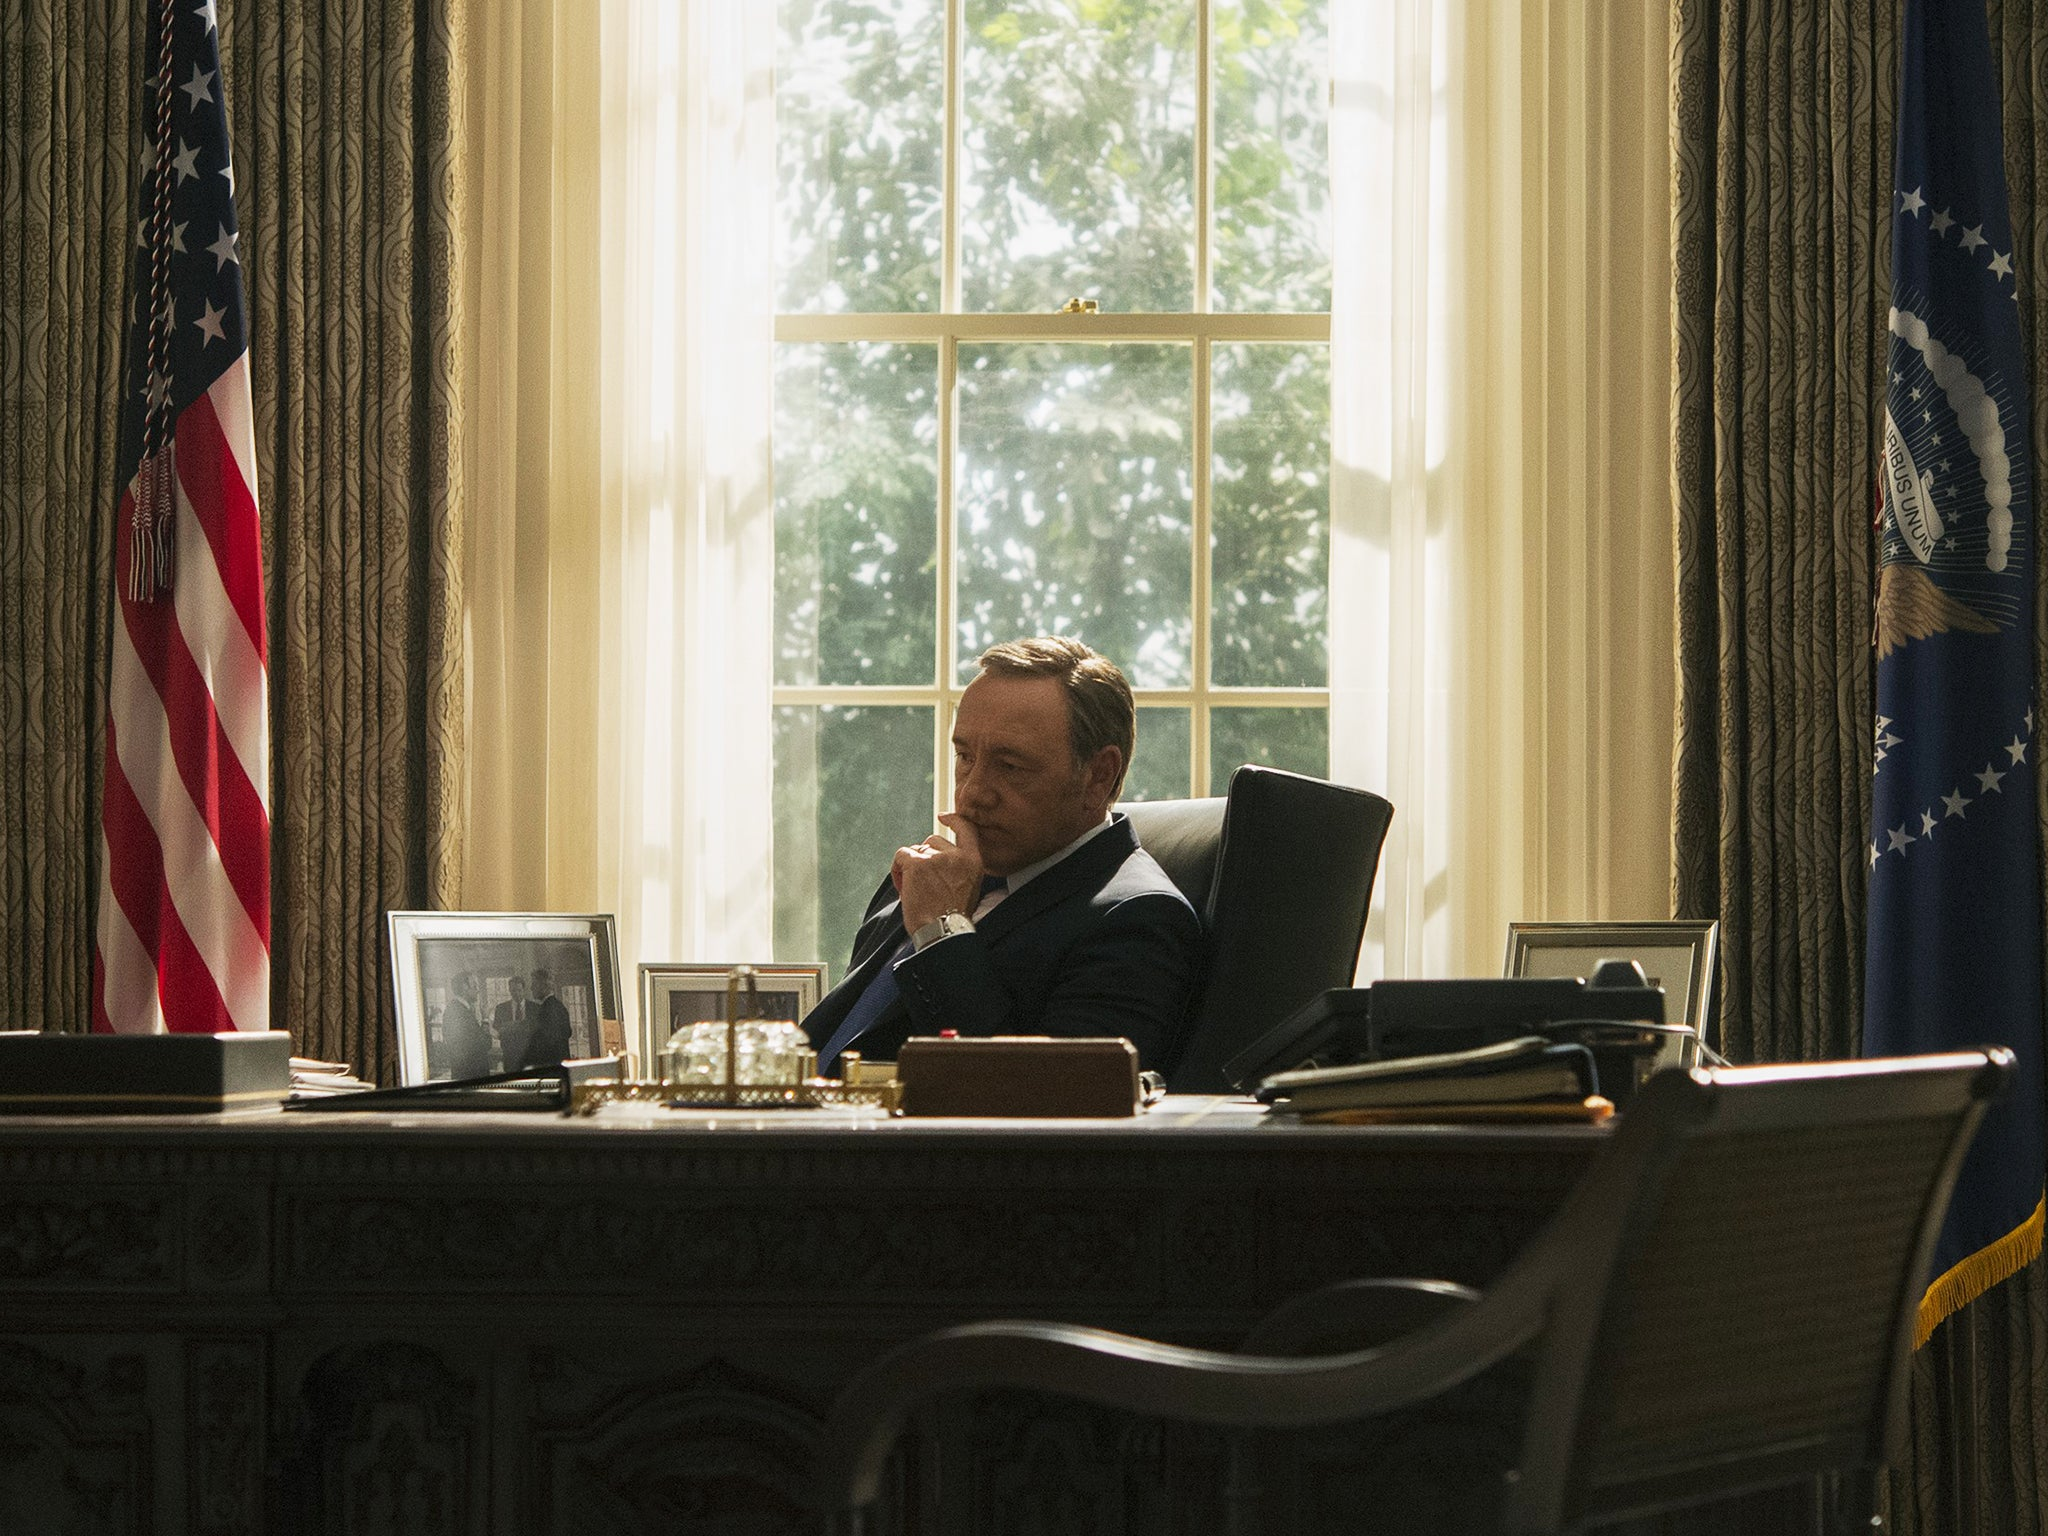 House of Cards season 3 What can we expect from the Kevin Spacey